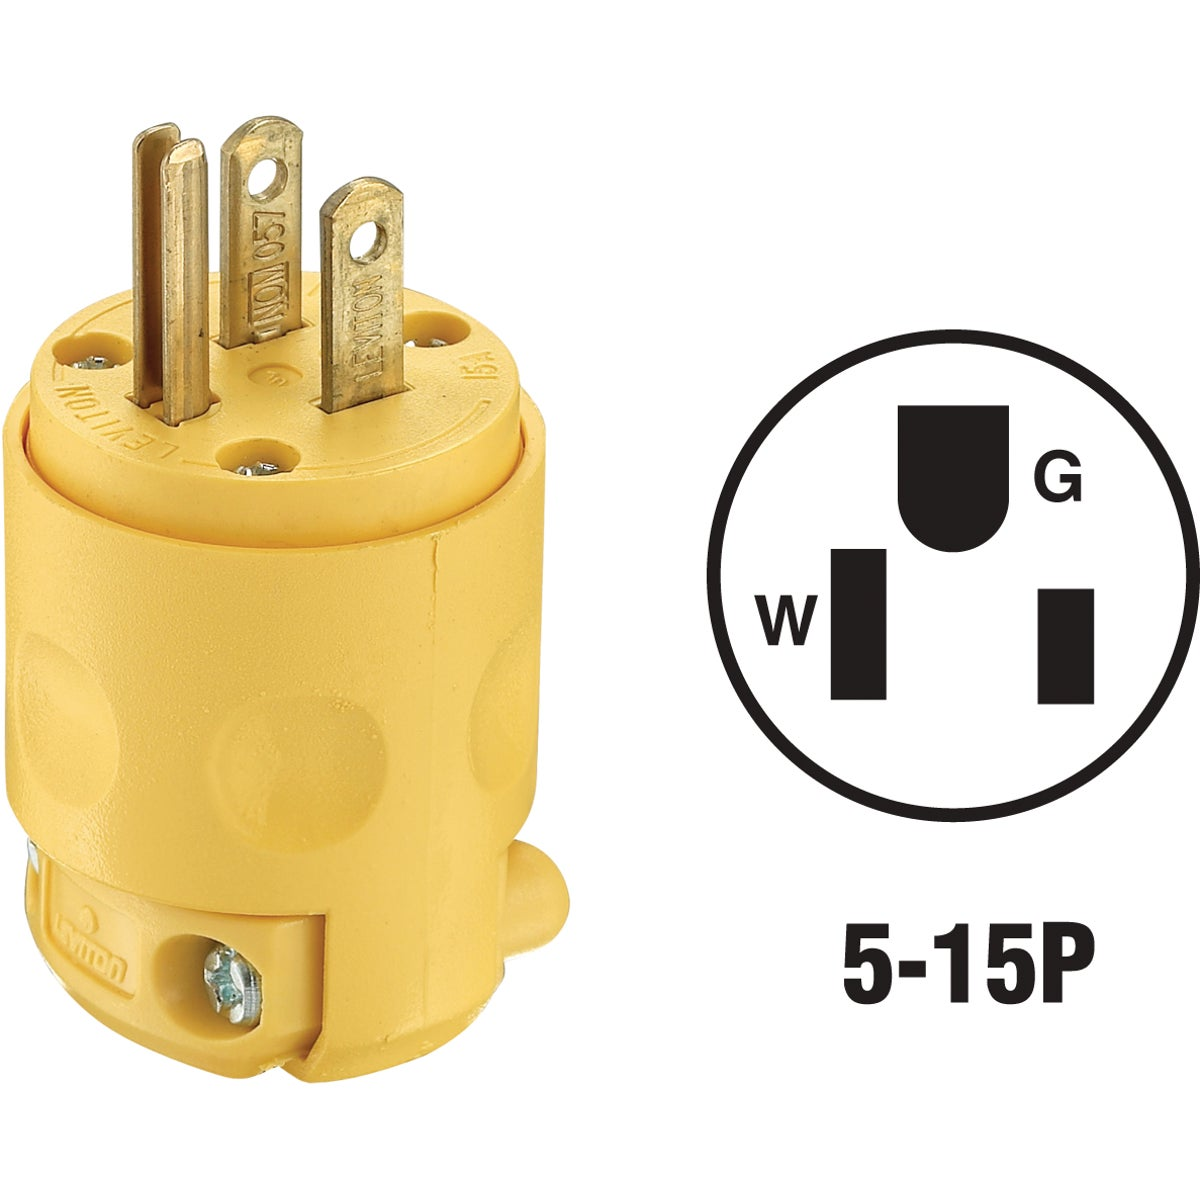 YEL GRND CORD PLUG - 870515PV by Leviton Mfg Co